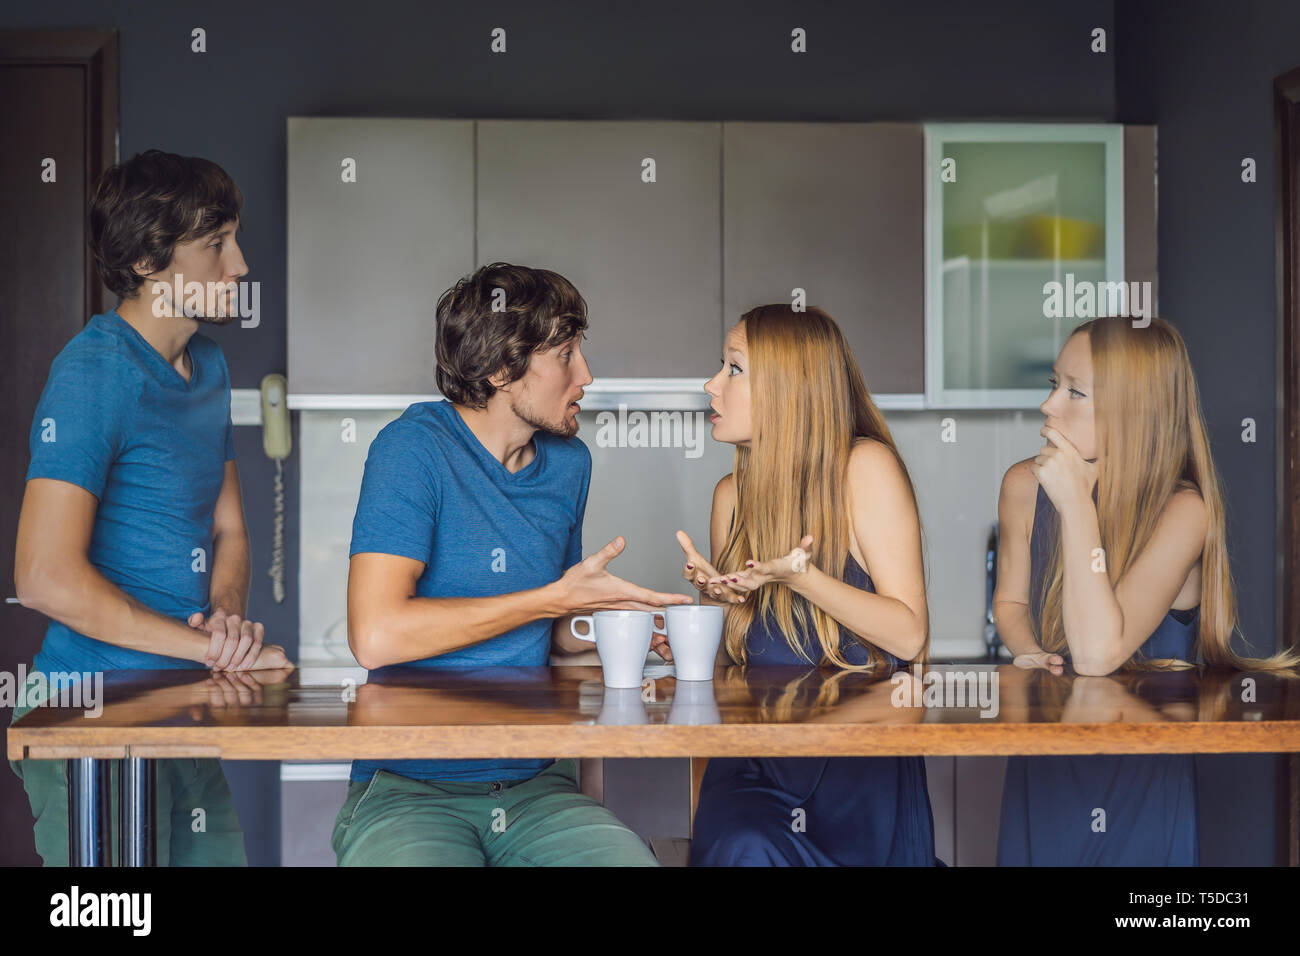 Young couple swears in the kitchen. Watch and evaluate their behavior from the side. Emotional intelligence concept - Stock Image